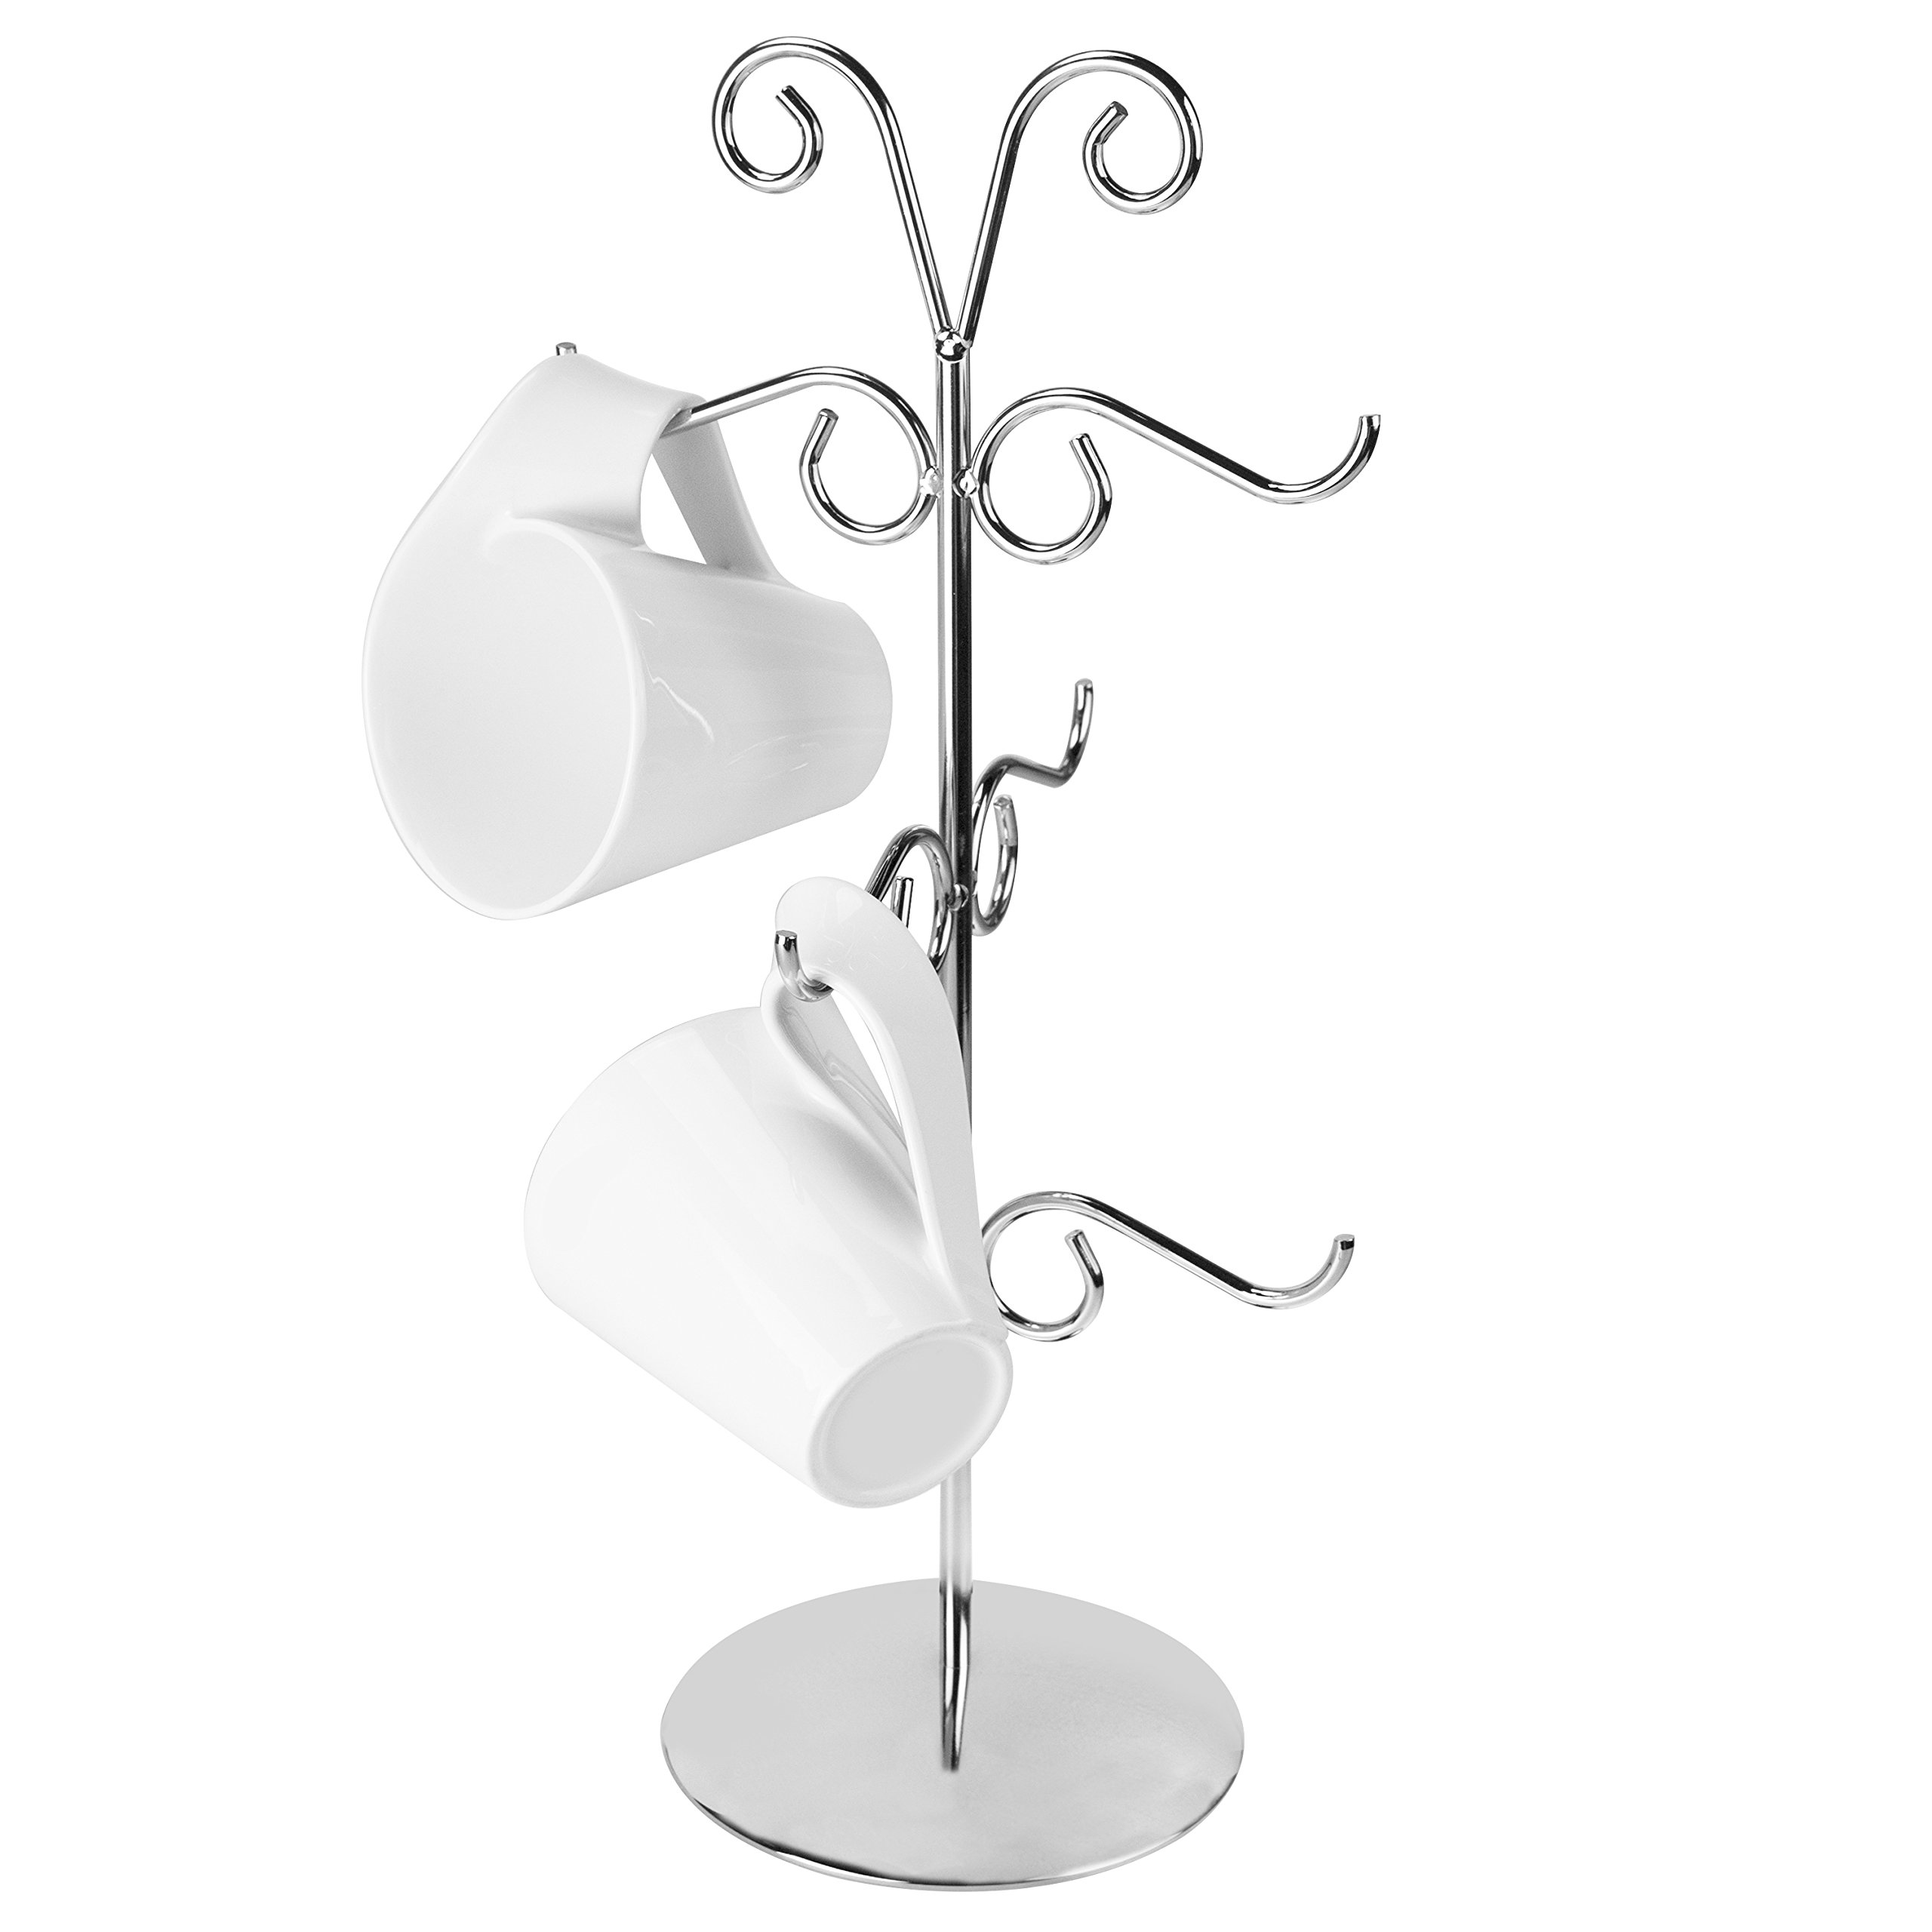 Deluxe 6 Hook Chrome-Plated Metal Swirl Design Mug Tree, Countertop Cup Hanging Holder